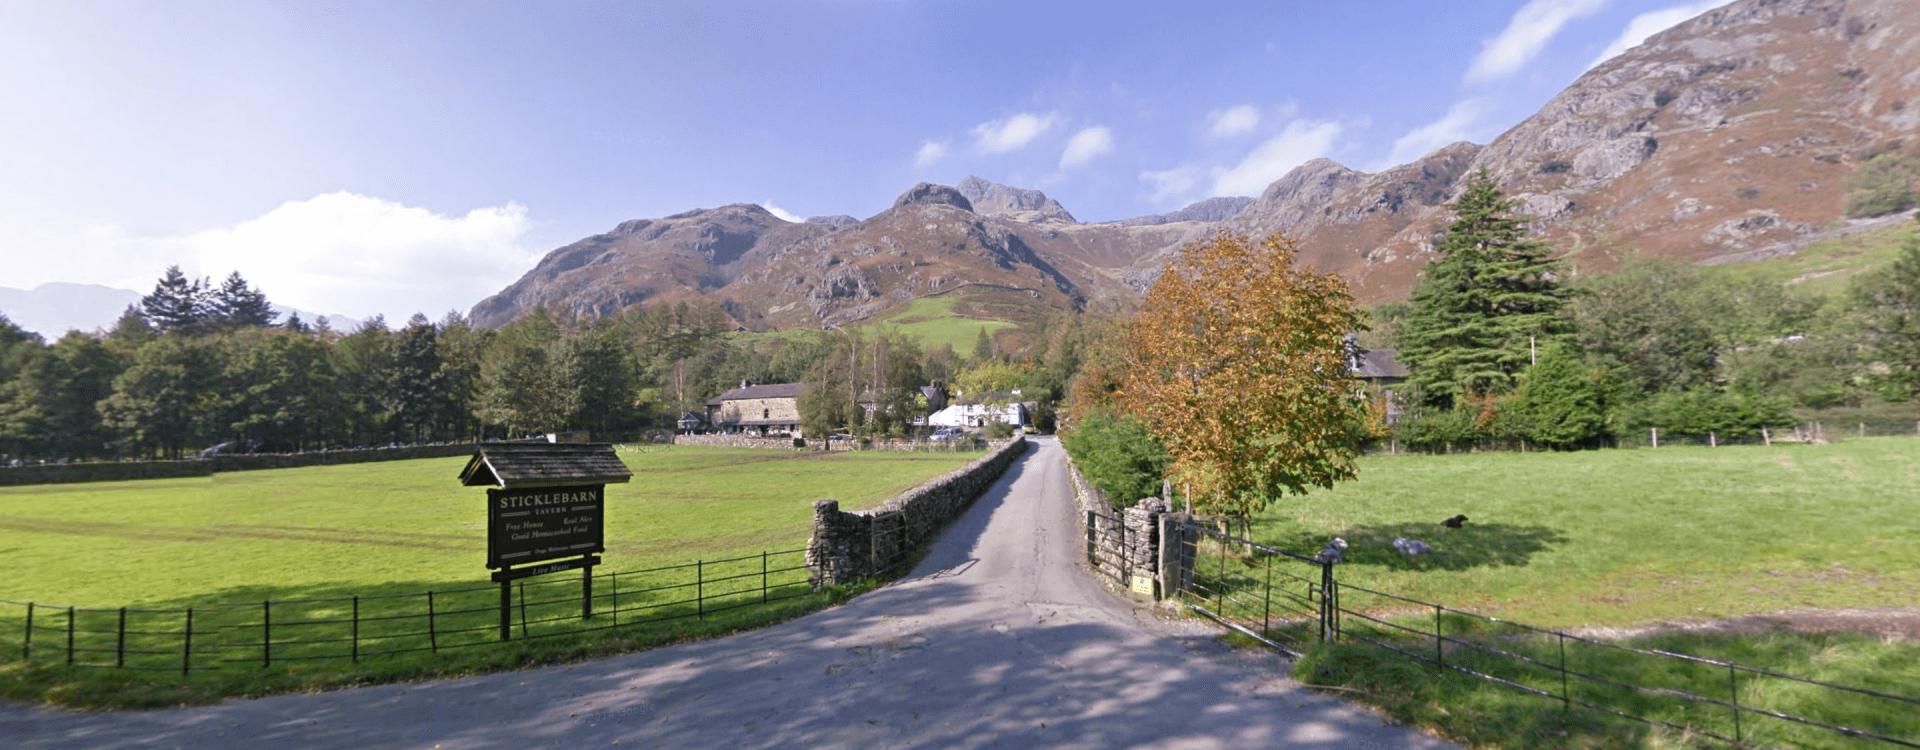 great langdale bunkhouse dog friendly